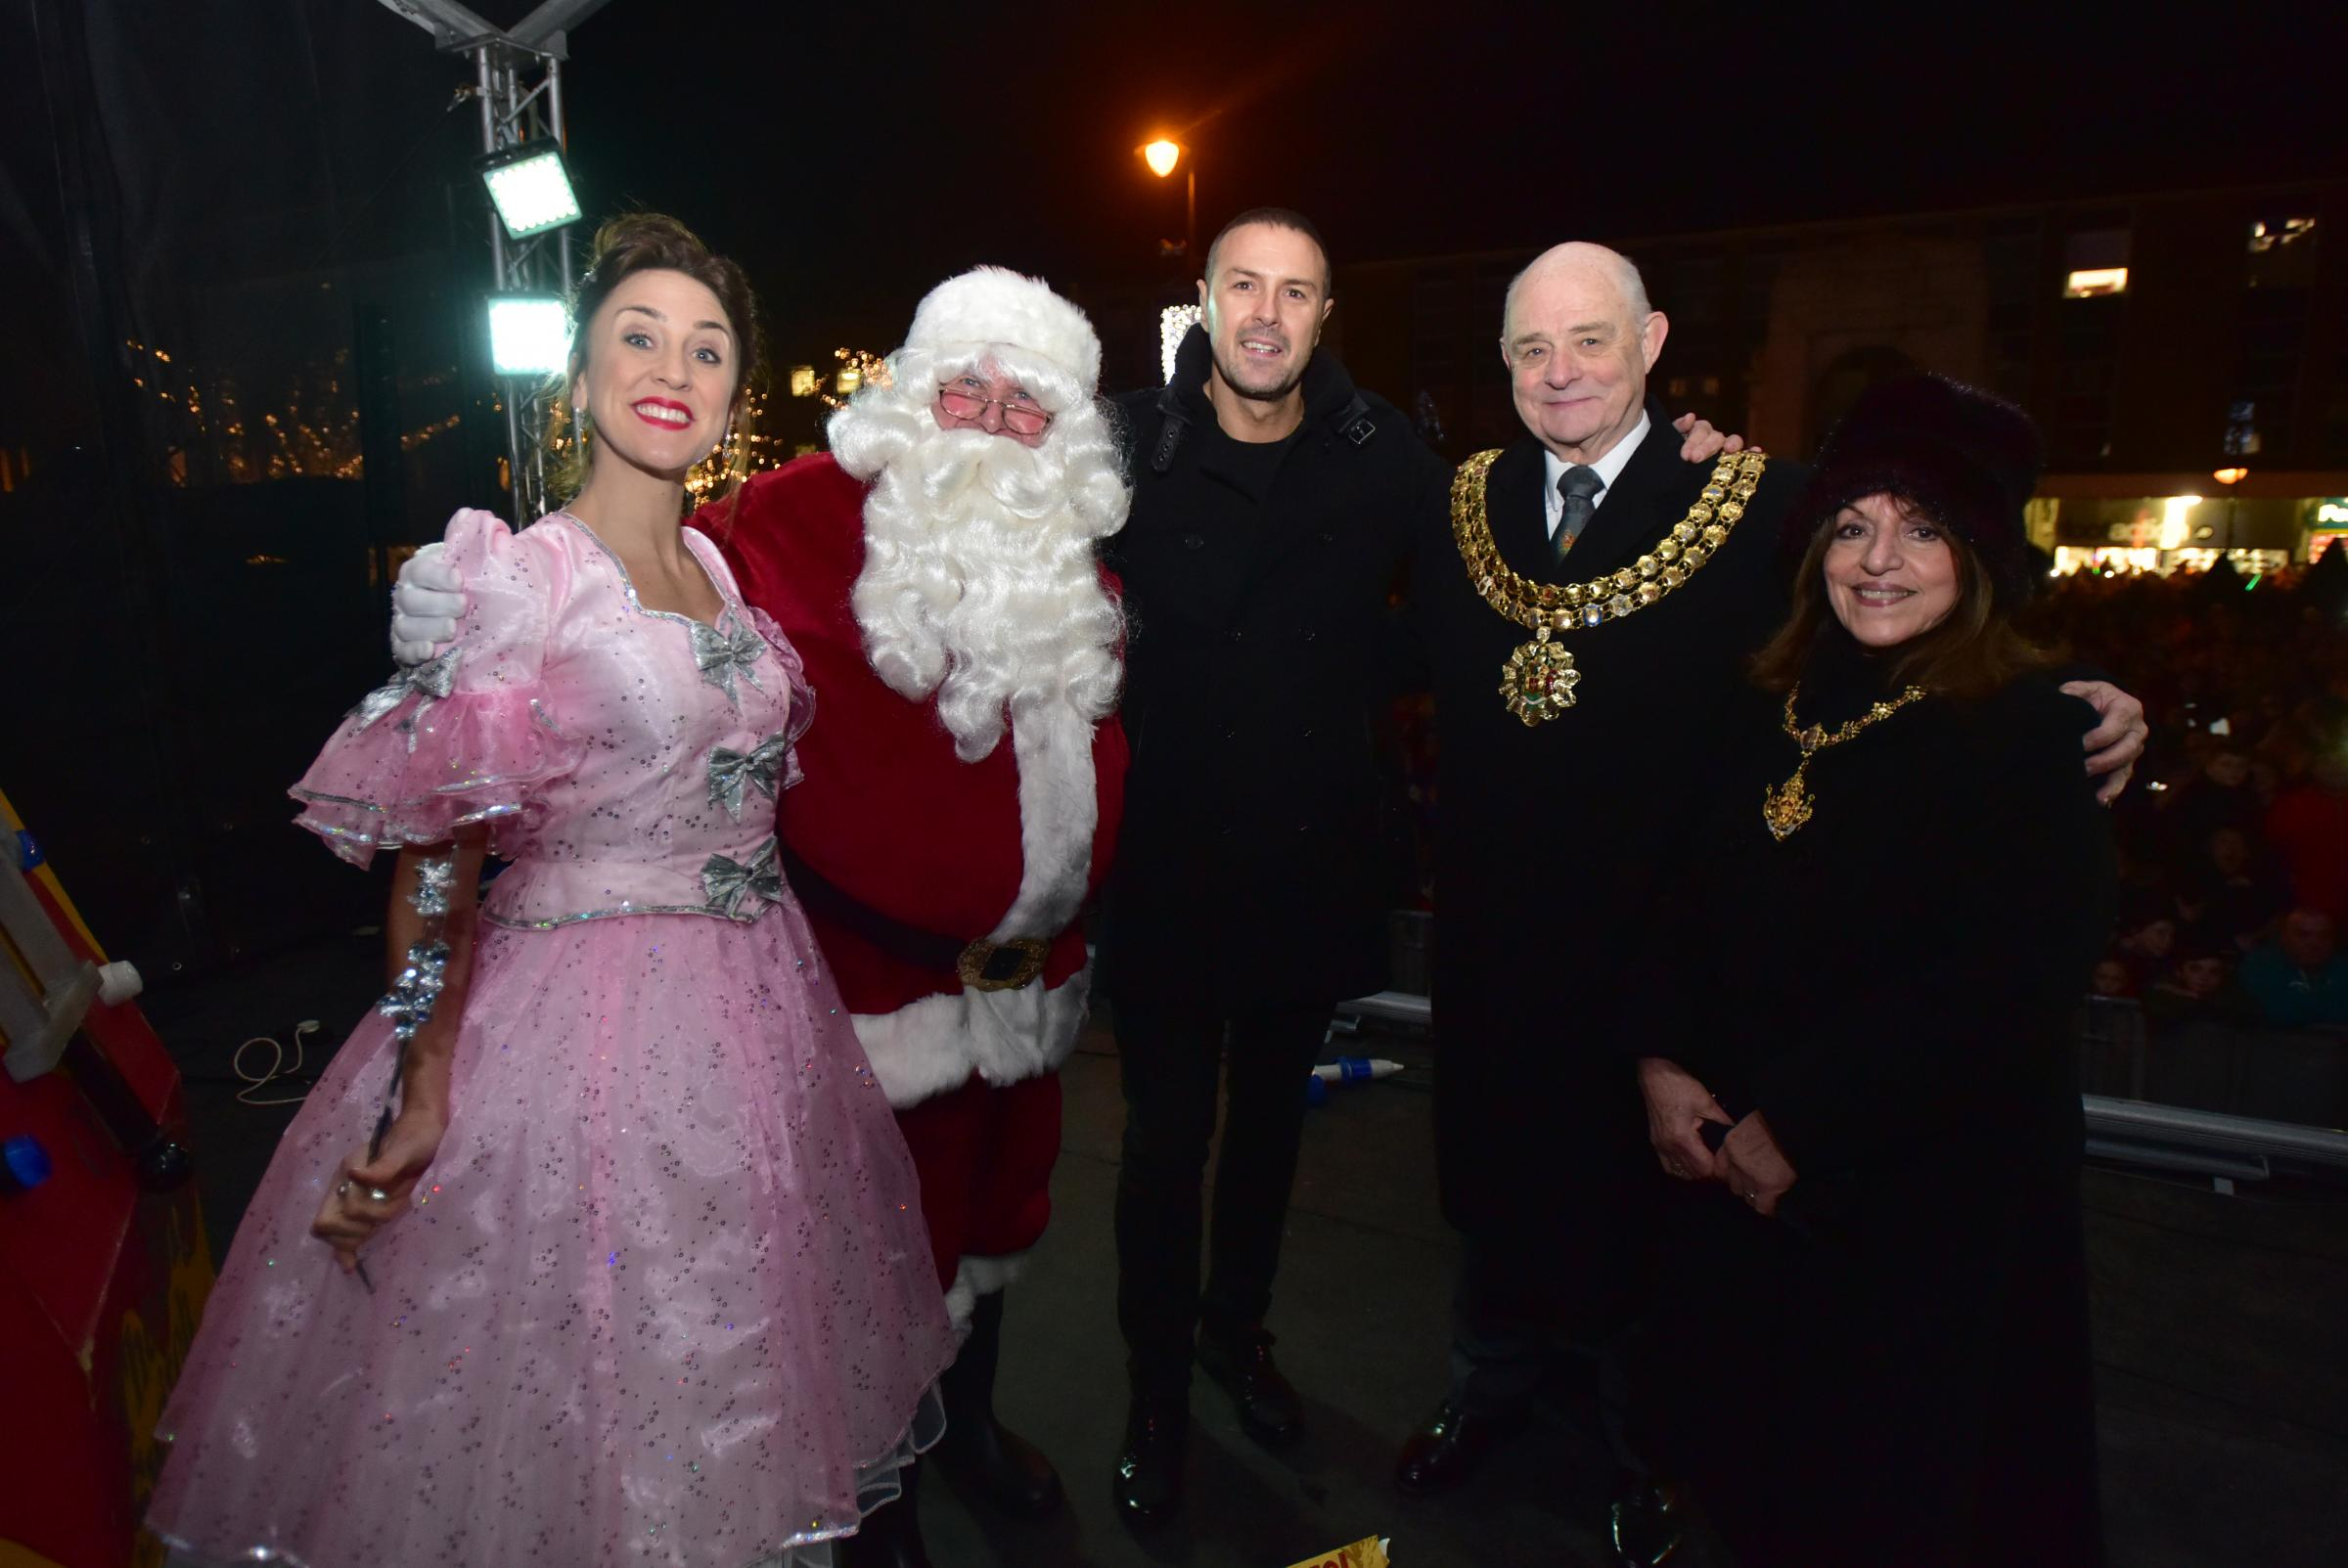 From left, Katy Ashworth, Father Christmas, Paddy McGuinness and the Mayor and Mayoress of Bolton at the Bolton Christmas Lights 2017